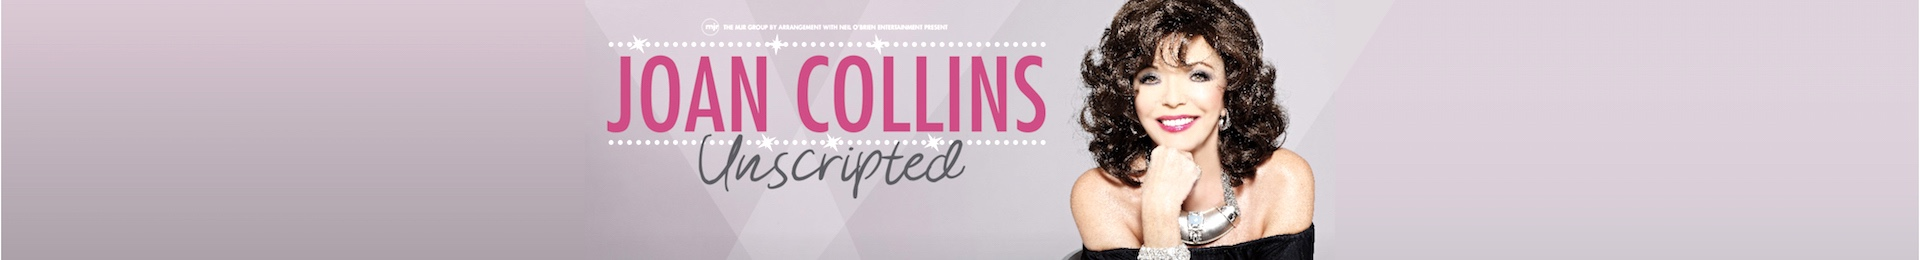 Joan Collins Unscripted banner image